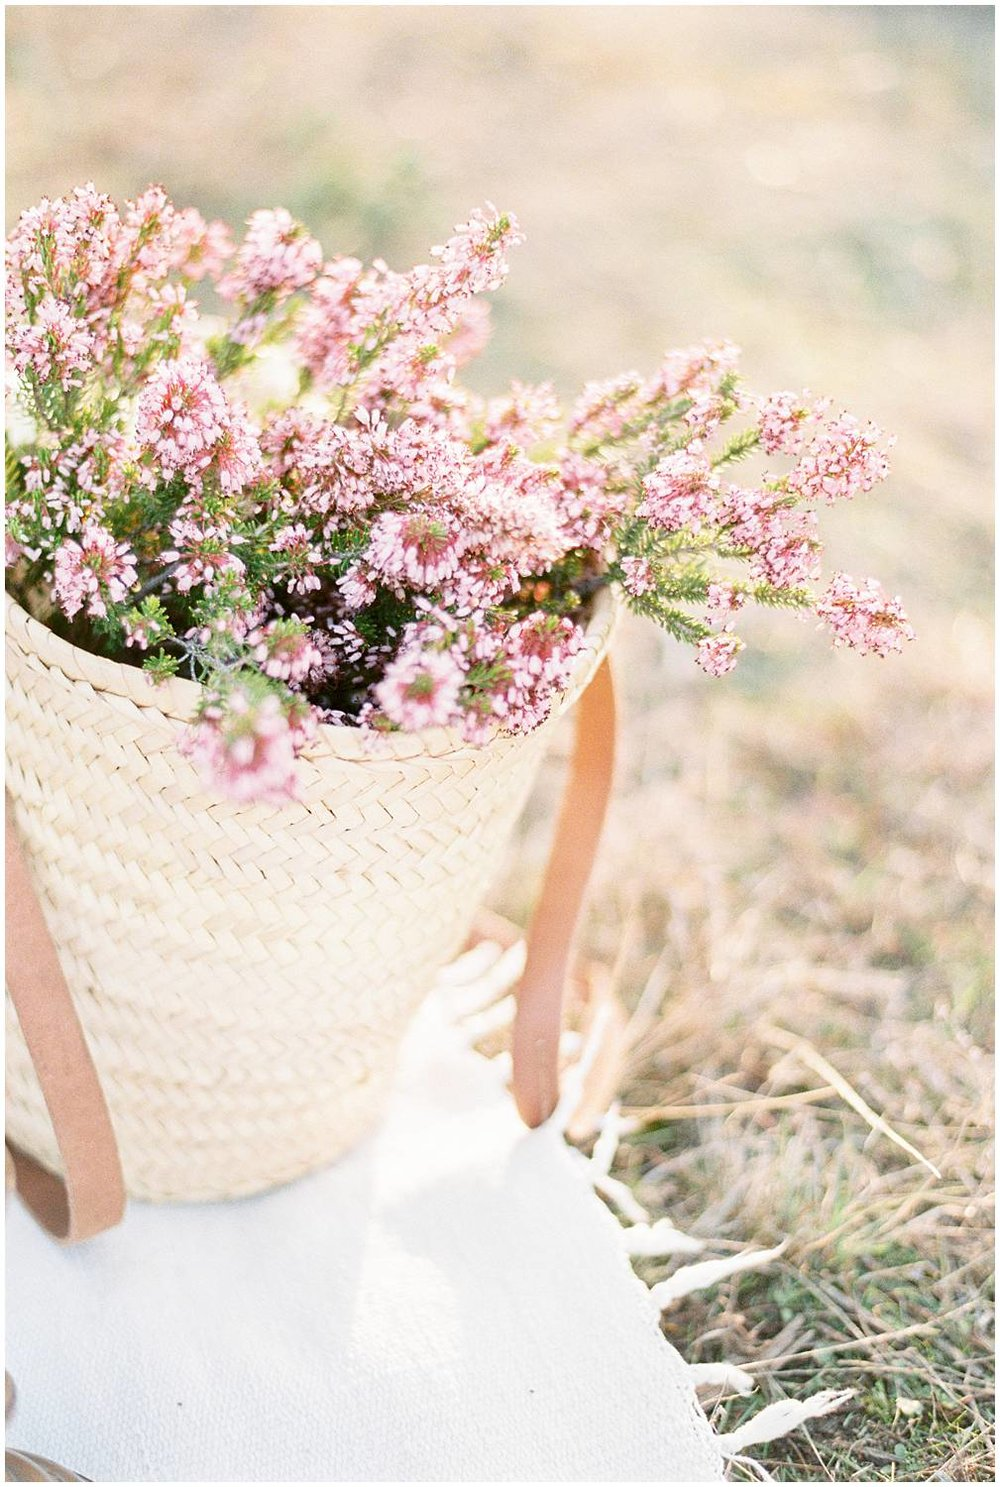 Flower basket from lavender field provence